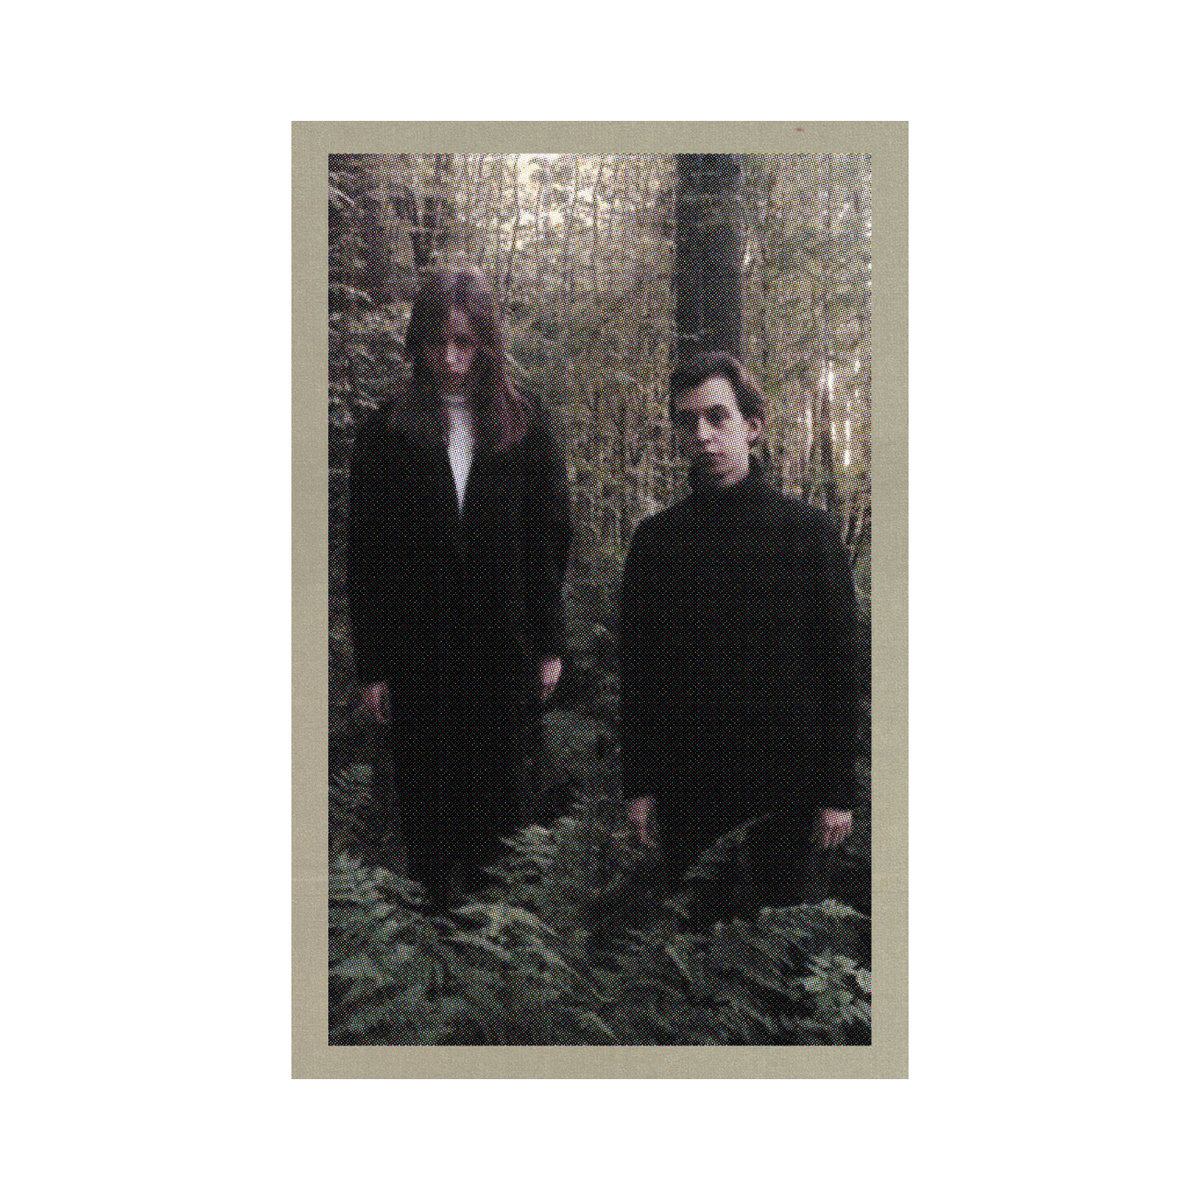 Sobranie 8 18 - Demons, the Angel and Dark Thoughts (LP; 2016)